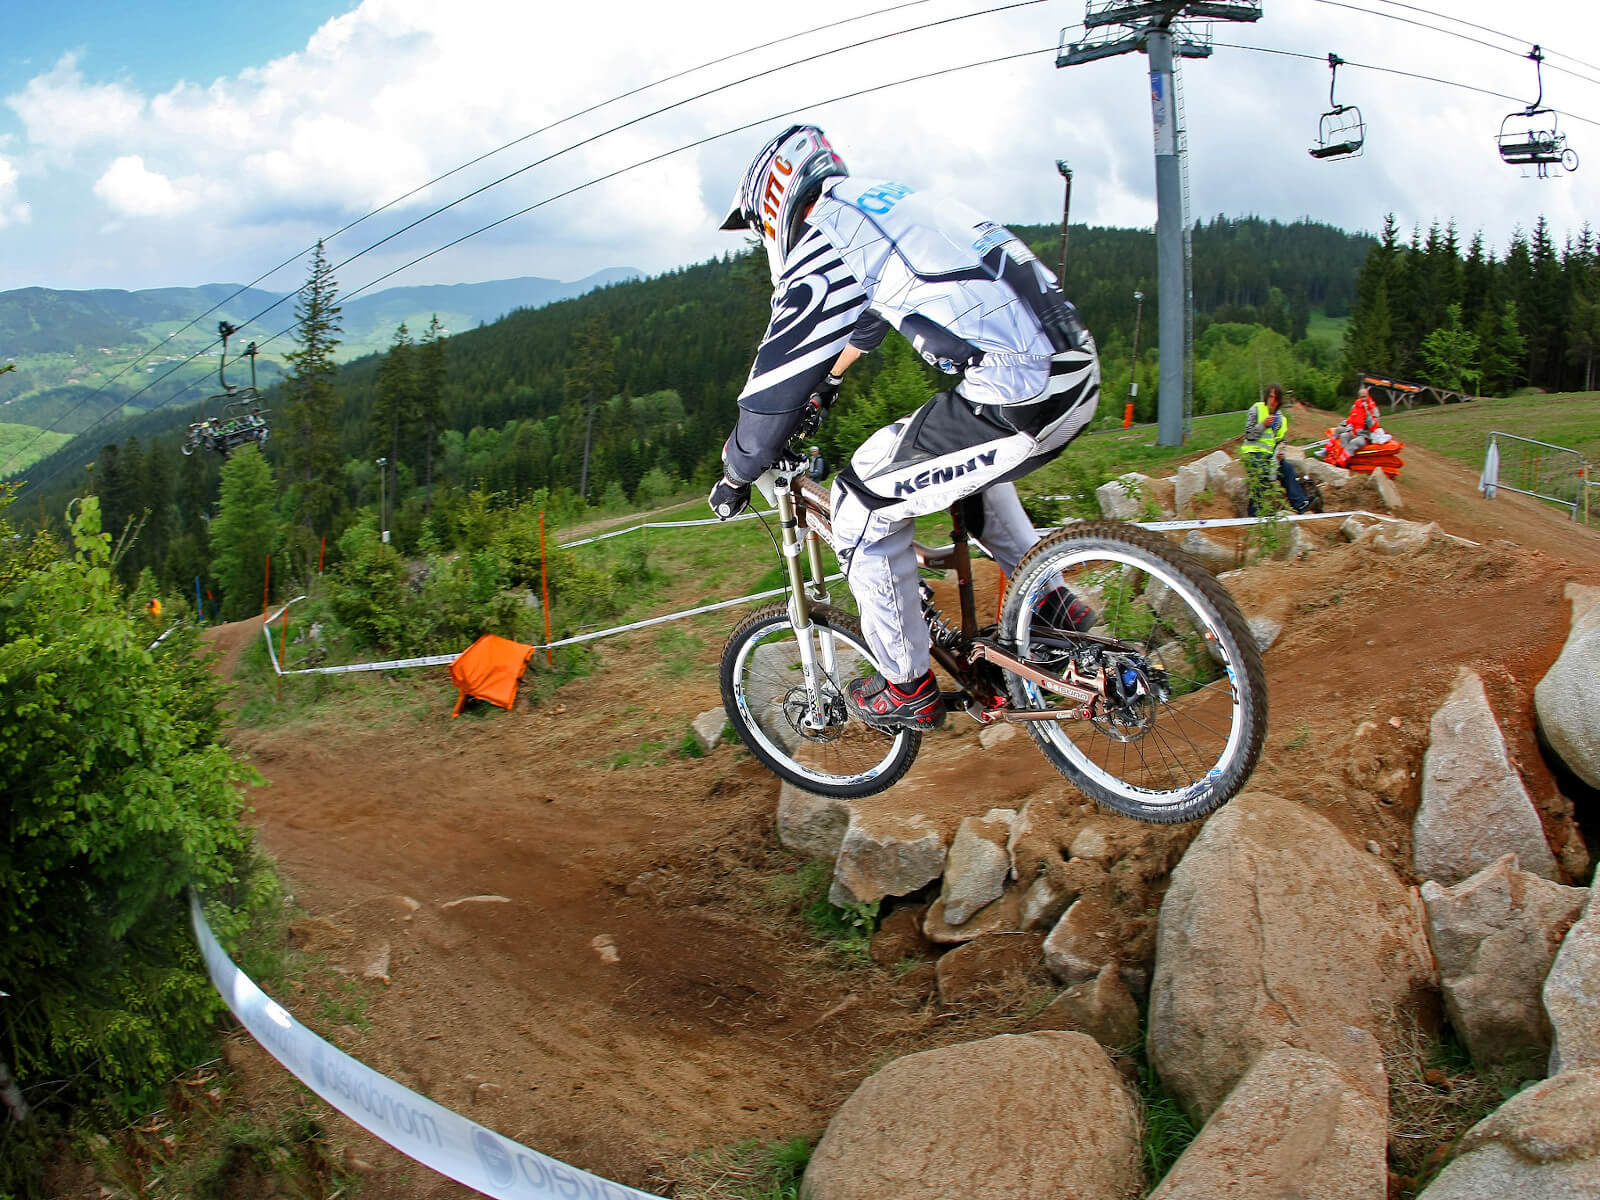 https://apps.tourisme-alsace.info/photos/kaysersberg/photos/stage-vtt-descente-freeride-femmes-bike-park-lac-blanc.jpg